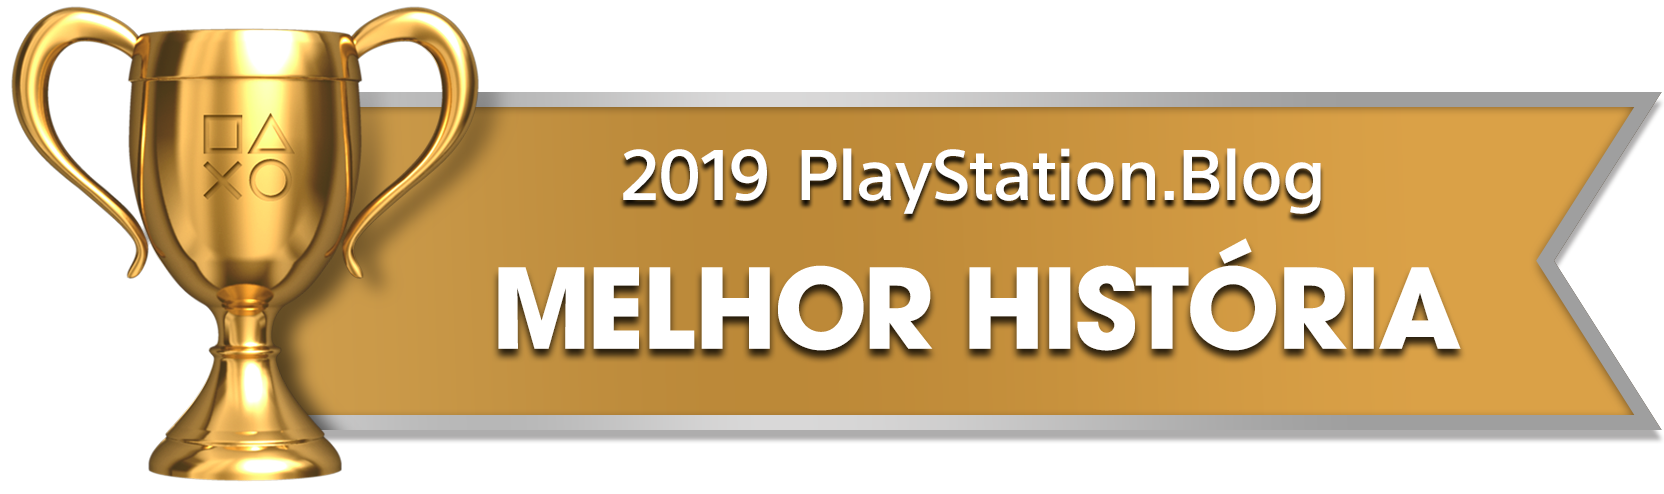 PS Blog Game of the Year 2019 - Best Narrative - 2 - Gold